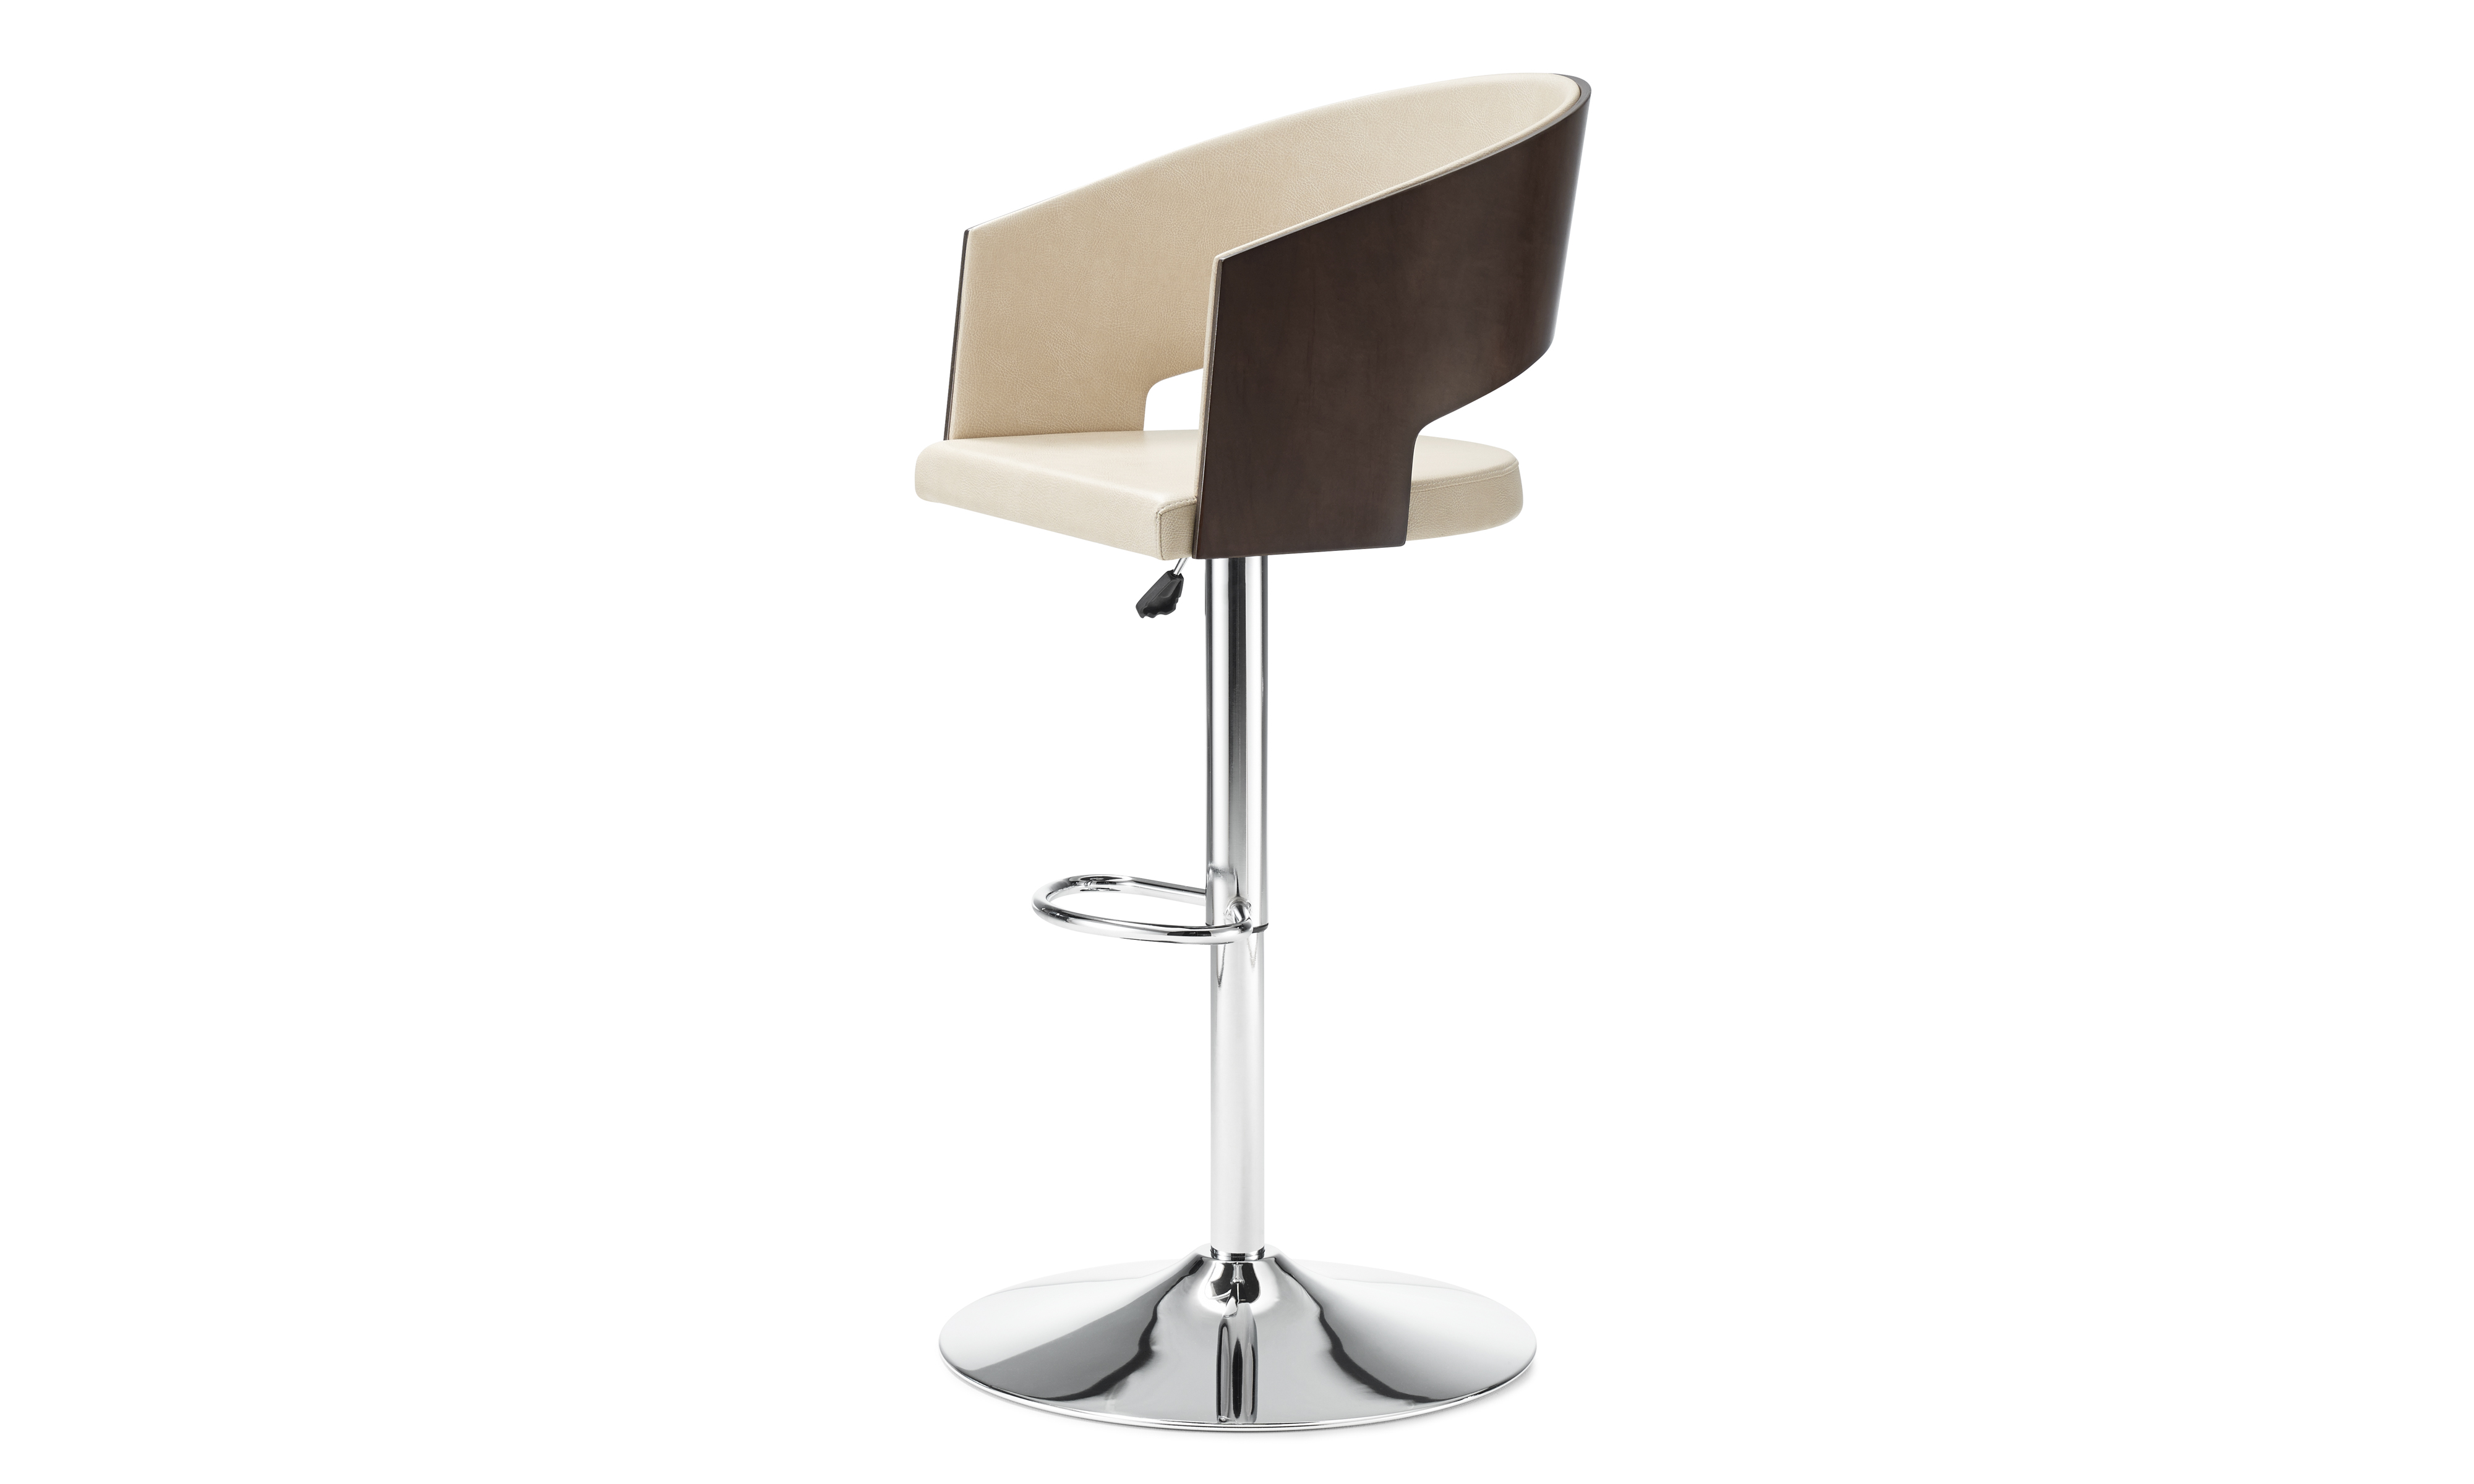 Source international products font stacking - Axis Botte Stool Chrome Wood 3 4 Jpg